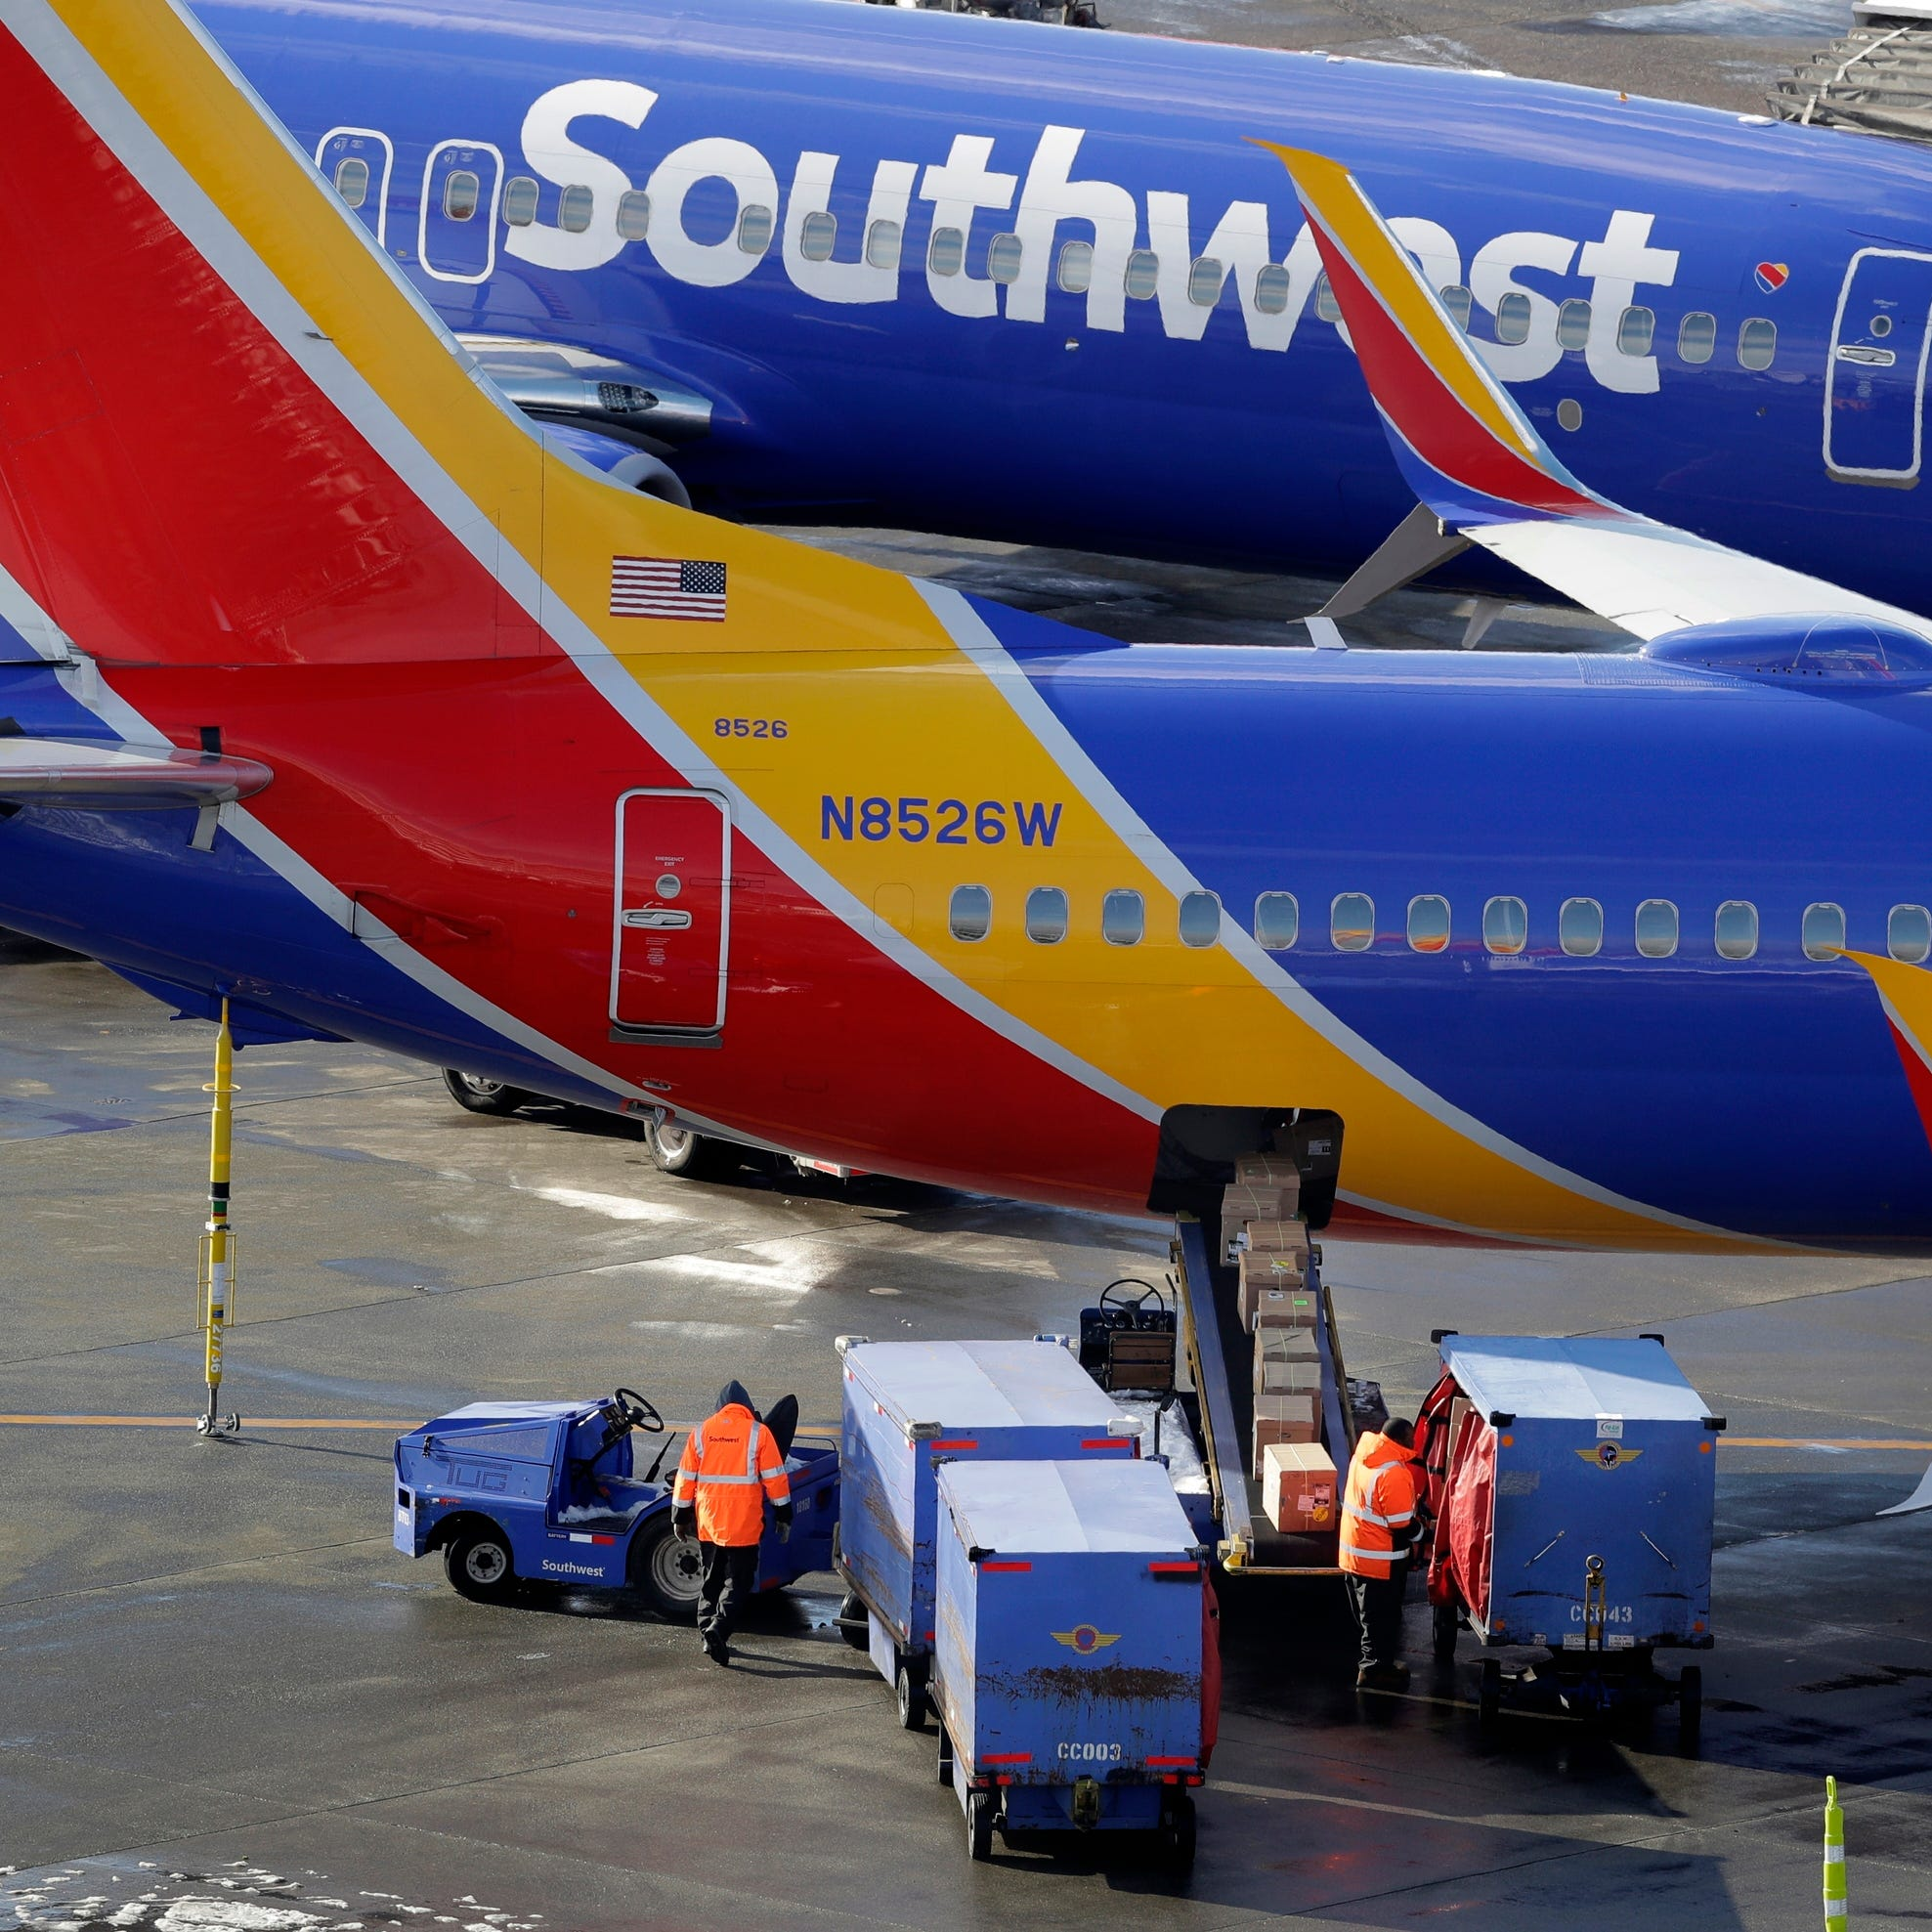 Southwest Airlines planes are loaded at Seattle-Tacoma International Airport on Feb. 5, 2019.